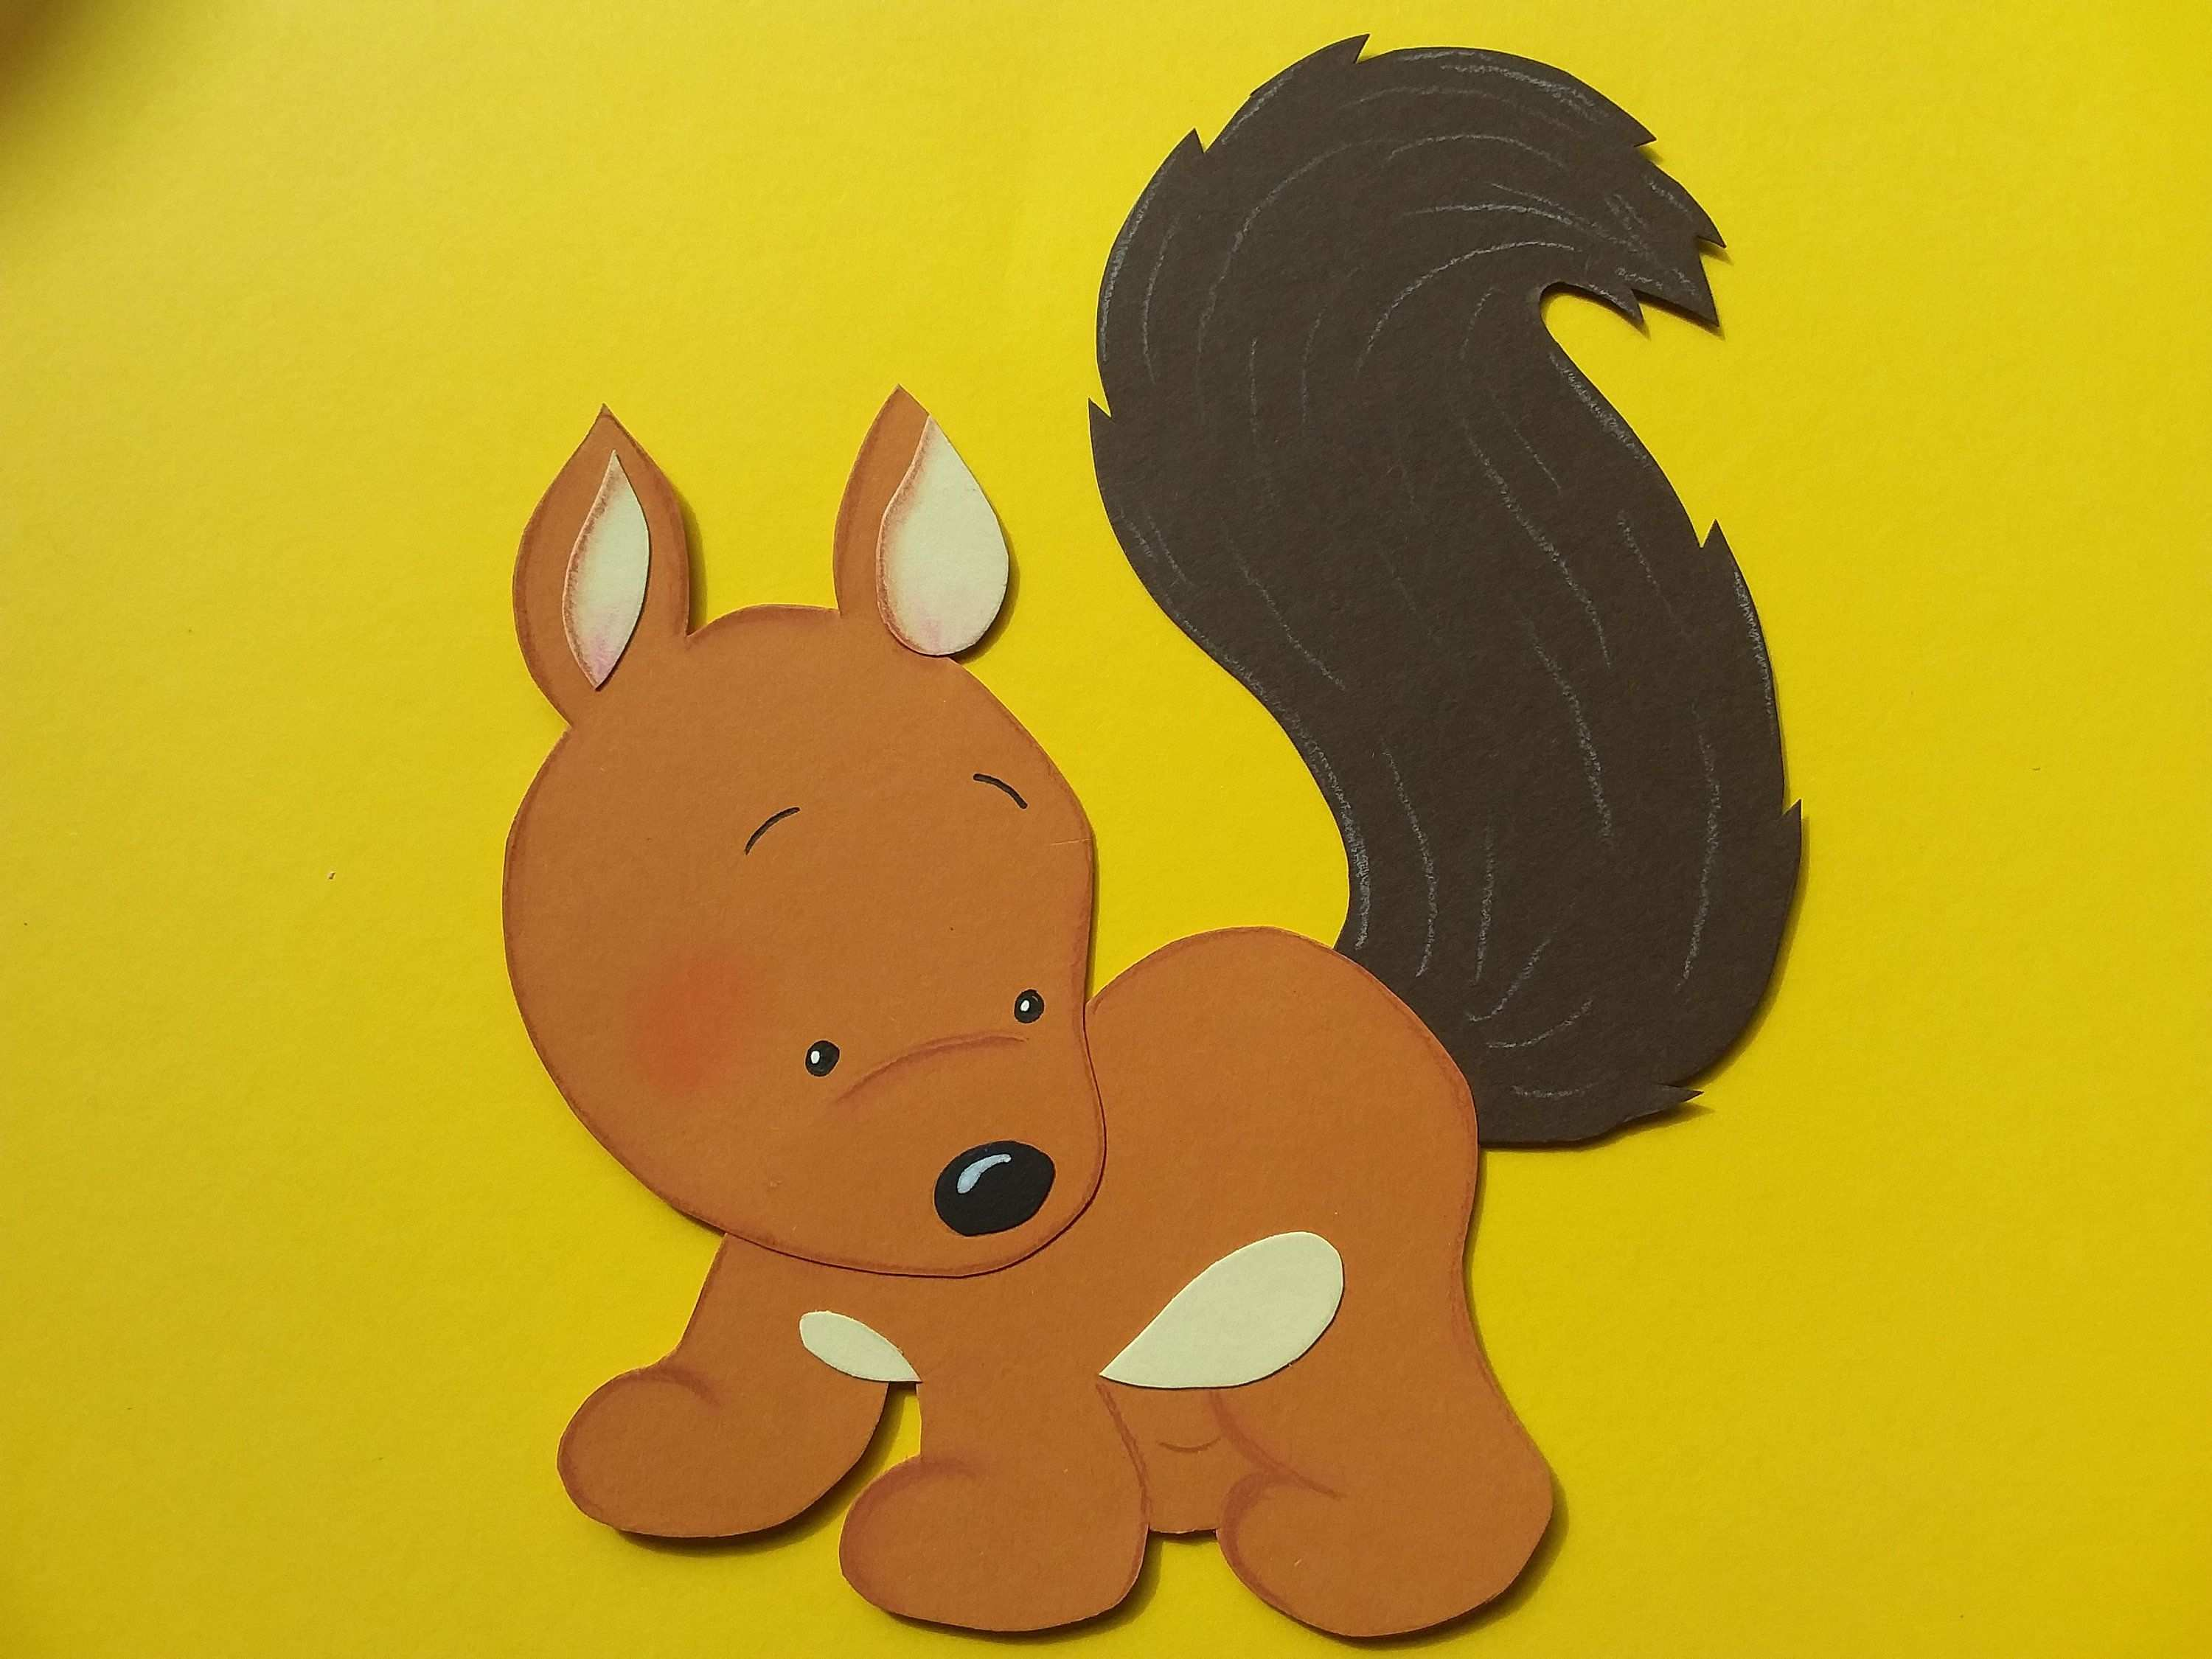 Window Image Cardstock Squirrel Large Squirrel Pikachu Card Stock